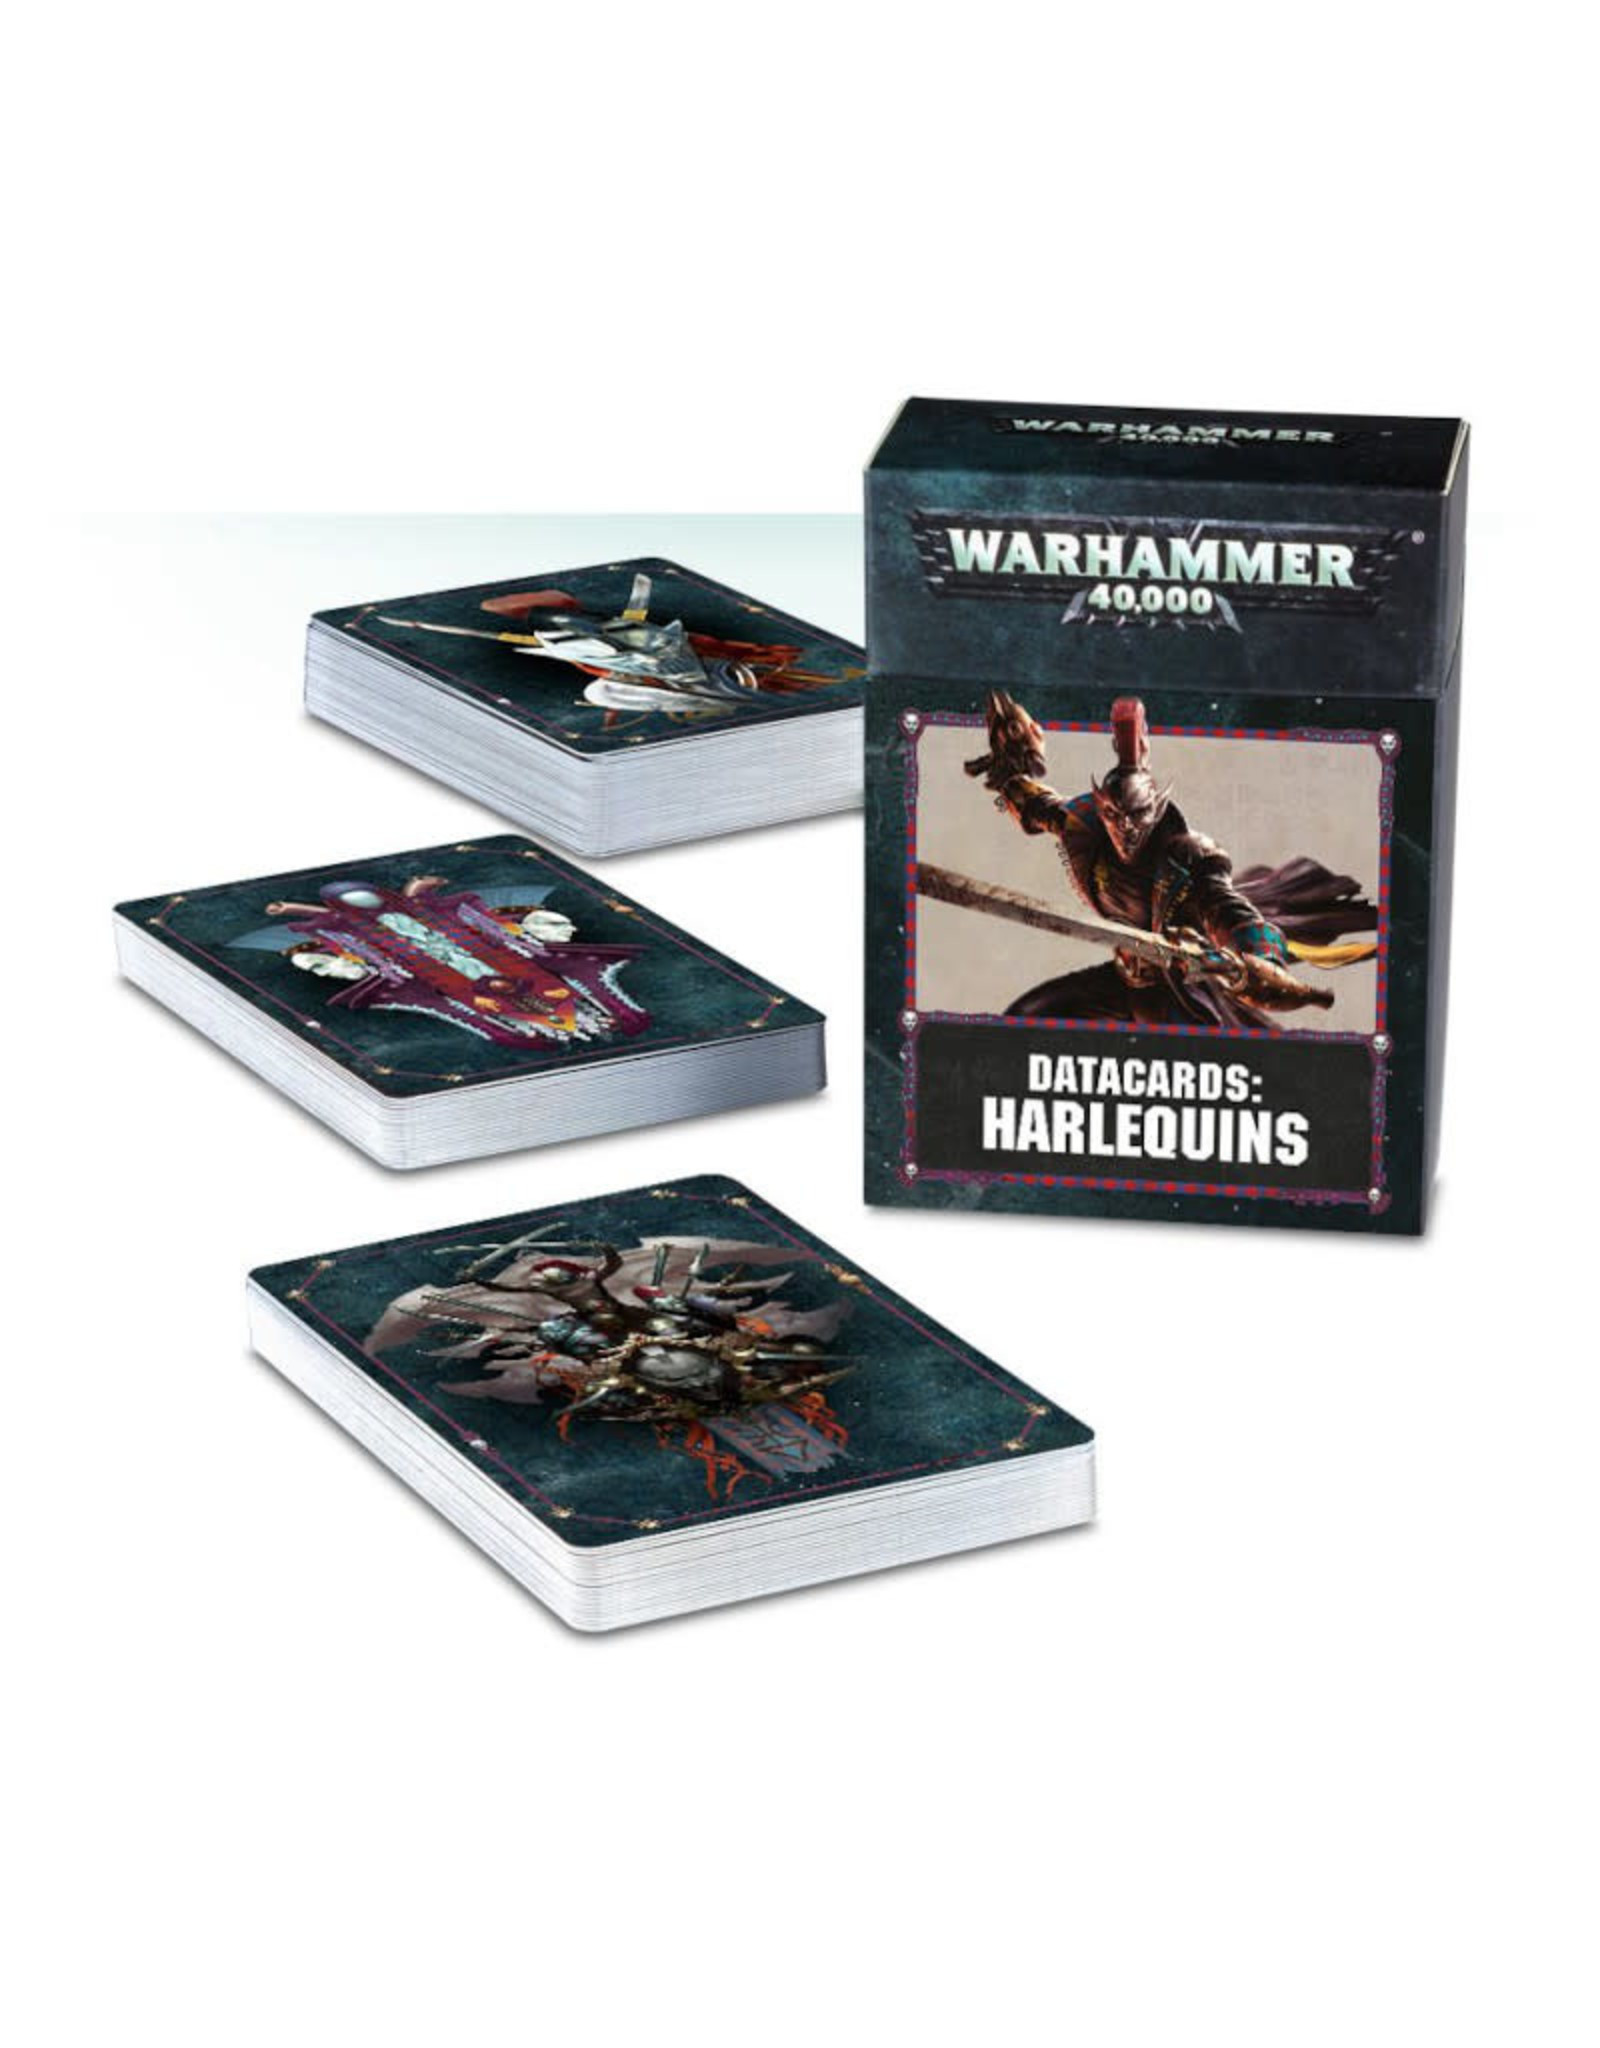 Games Workshop Warhammer 40K Datacards Harlequins (8th Edition)